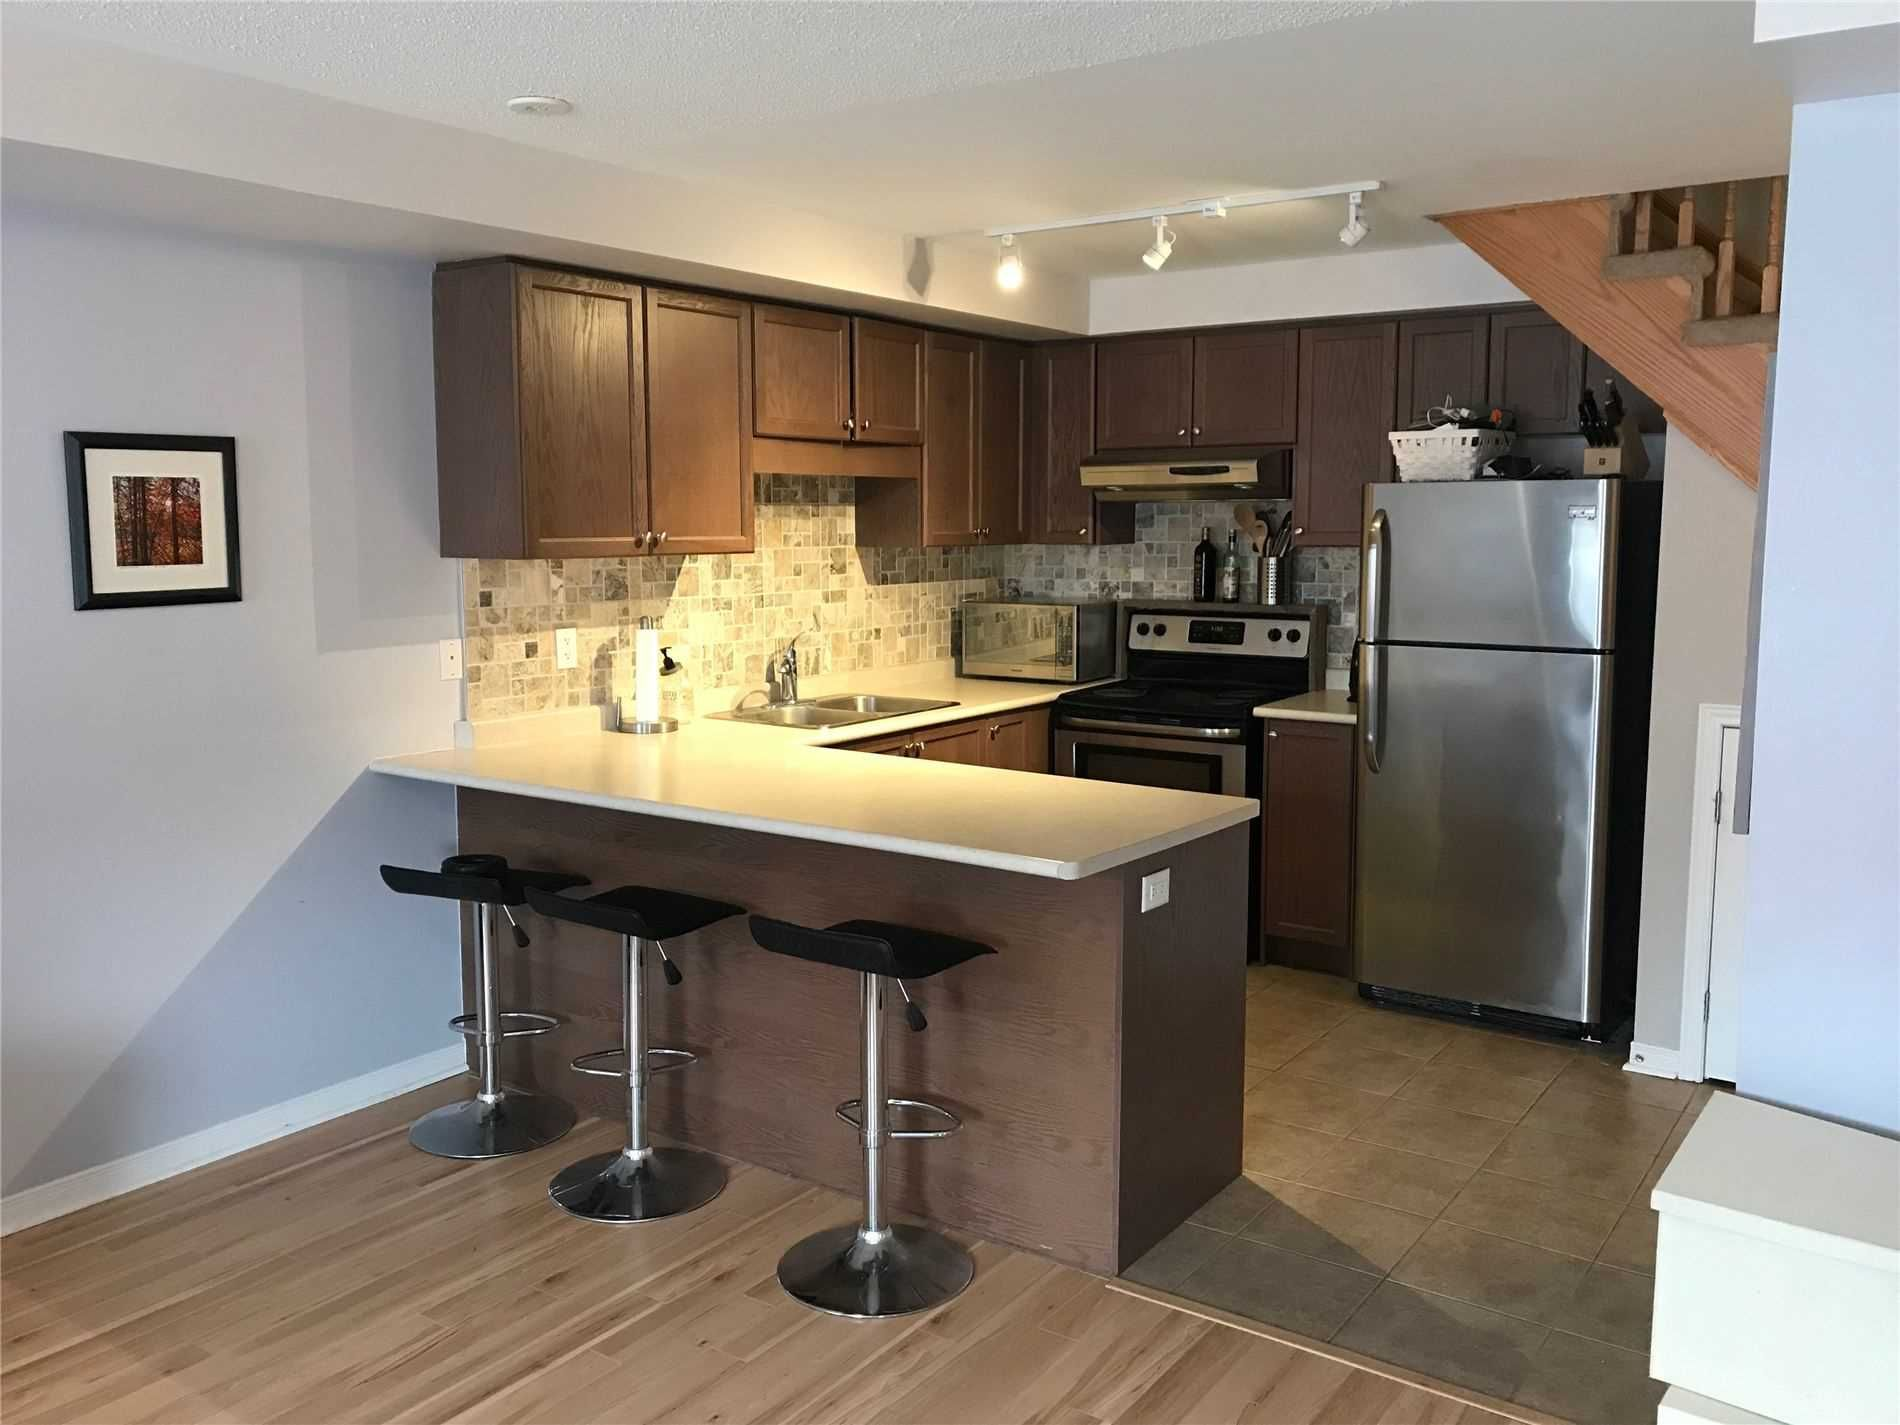 Main Photo: 26 5 Armstrong Street: Orangeville Condo for lease : MLS®# W4575748